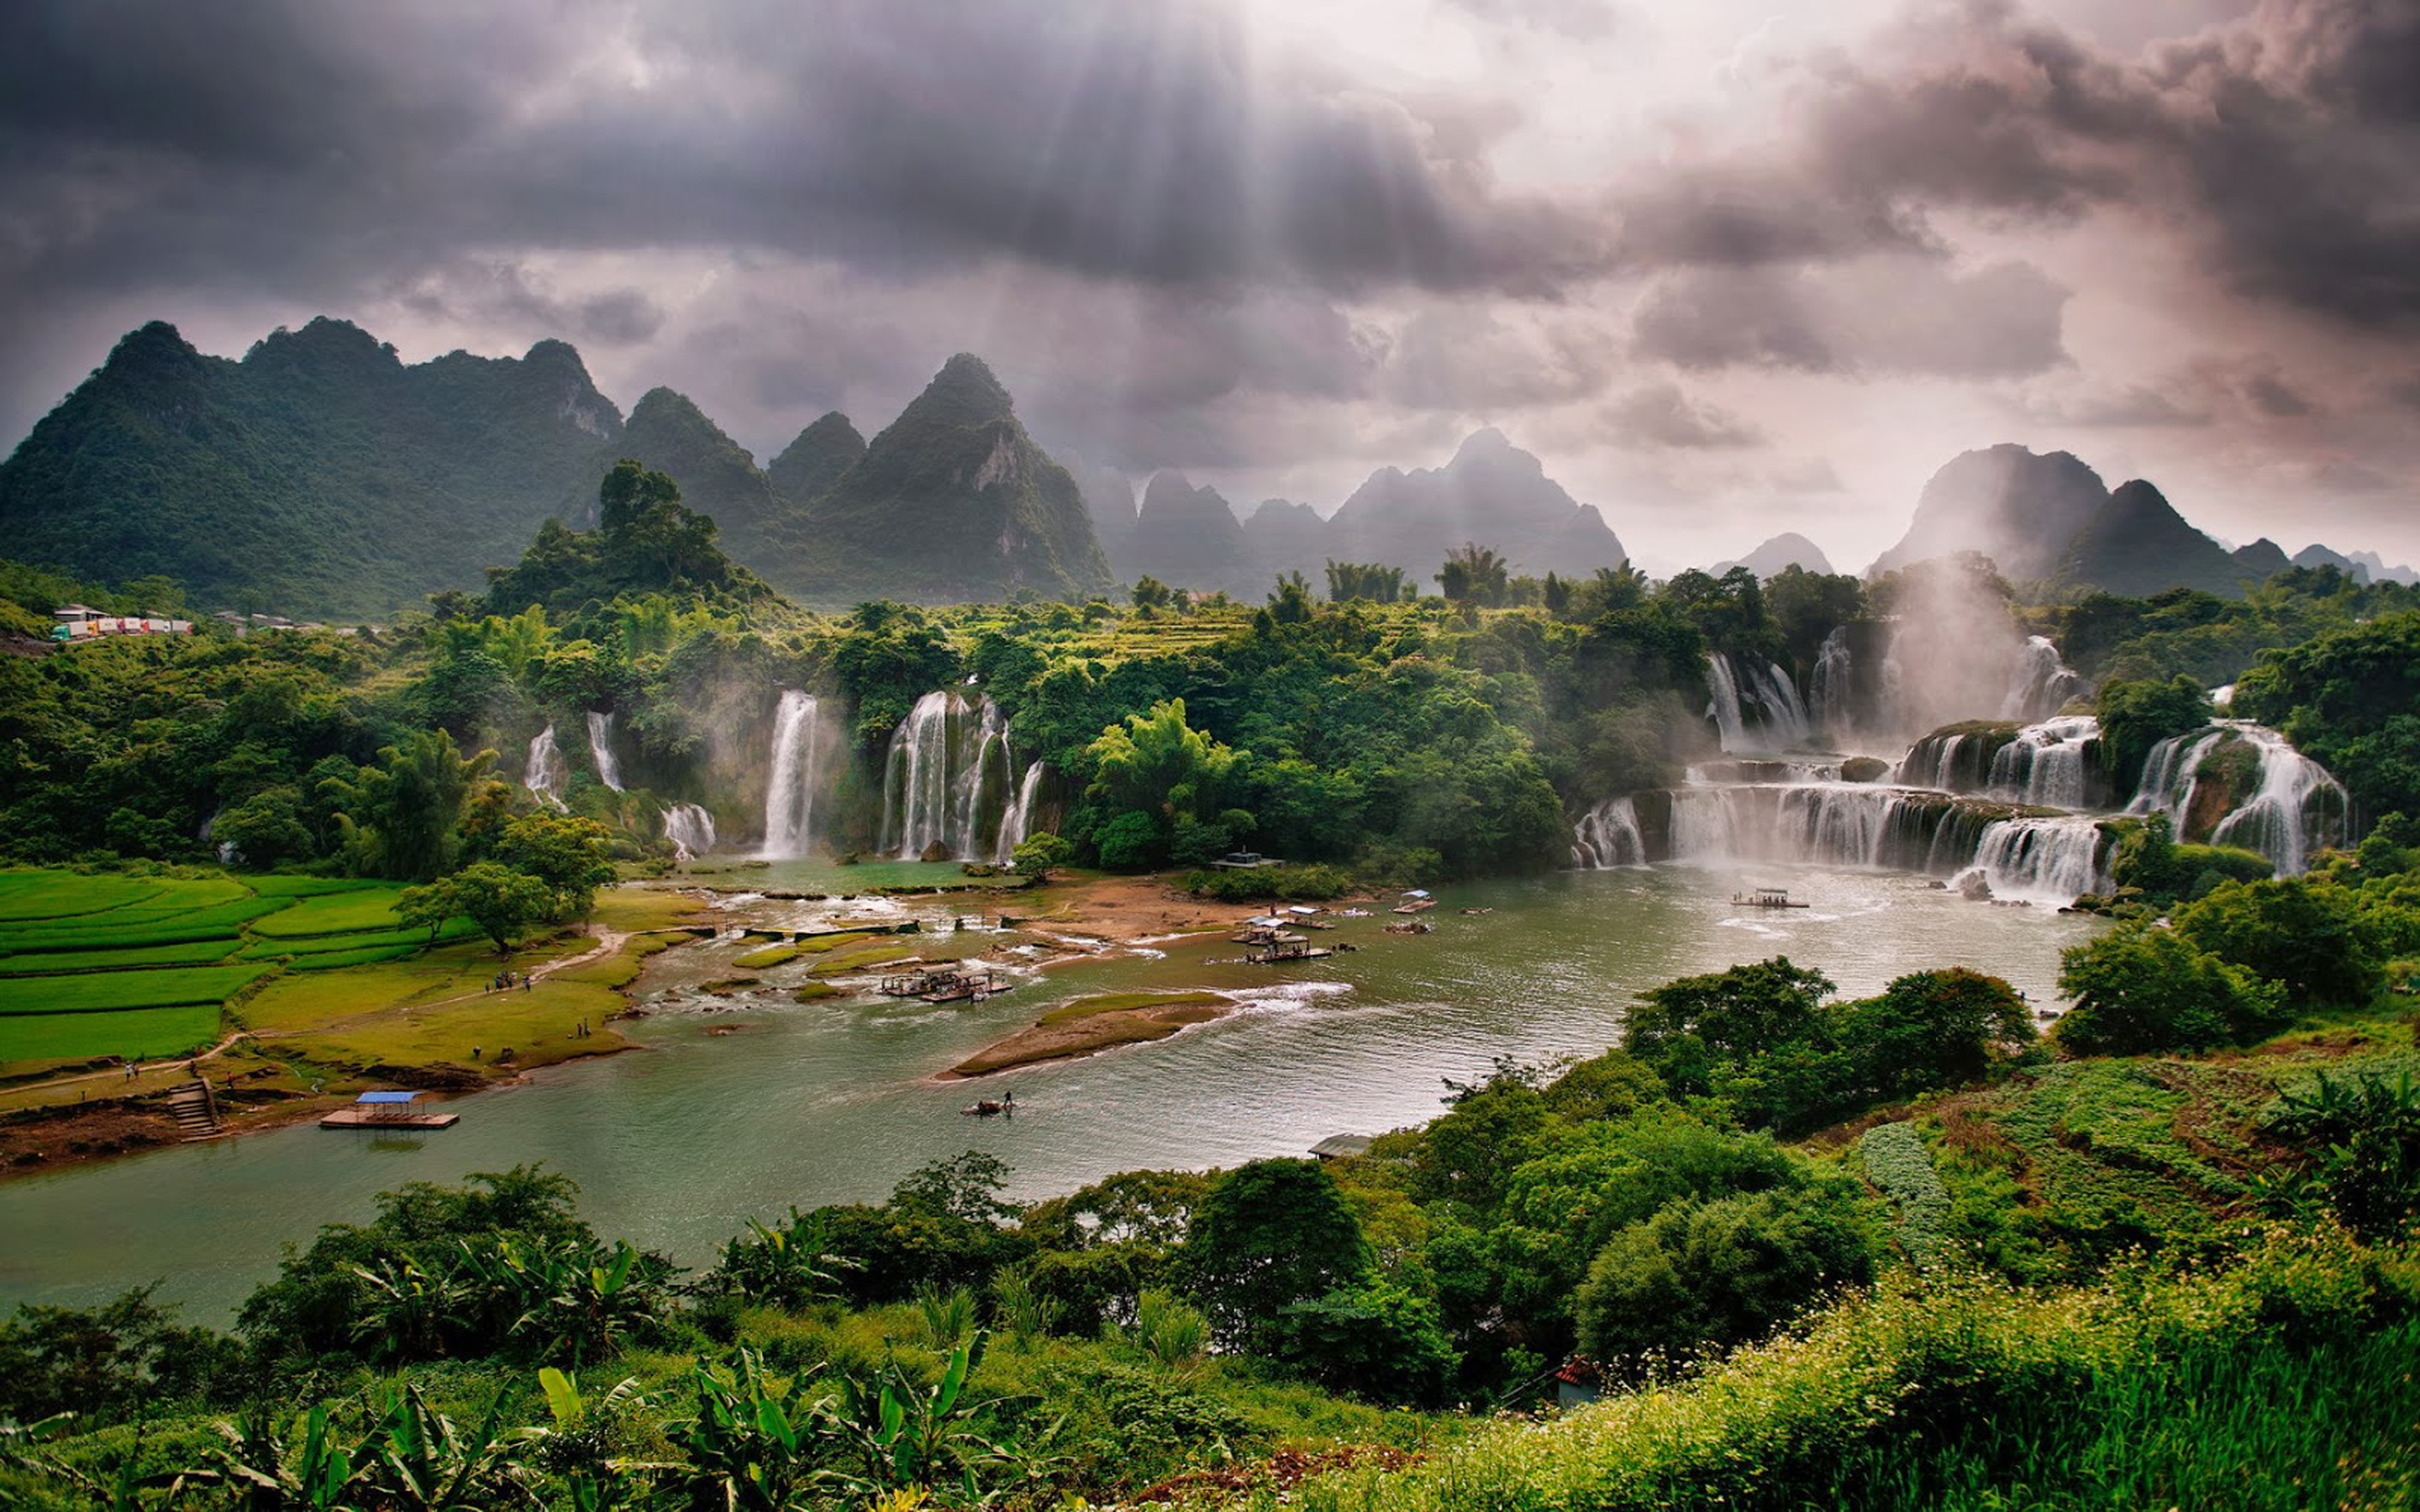 Water Fall Wallpaper Hd For Desktop Free Download Detian Waterfall Daxin County Guangxi China Desktop